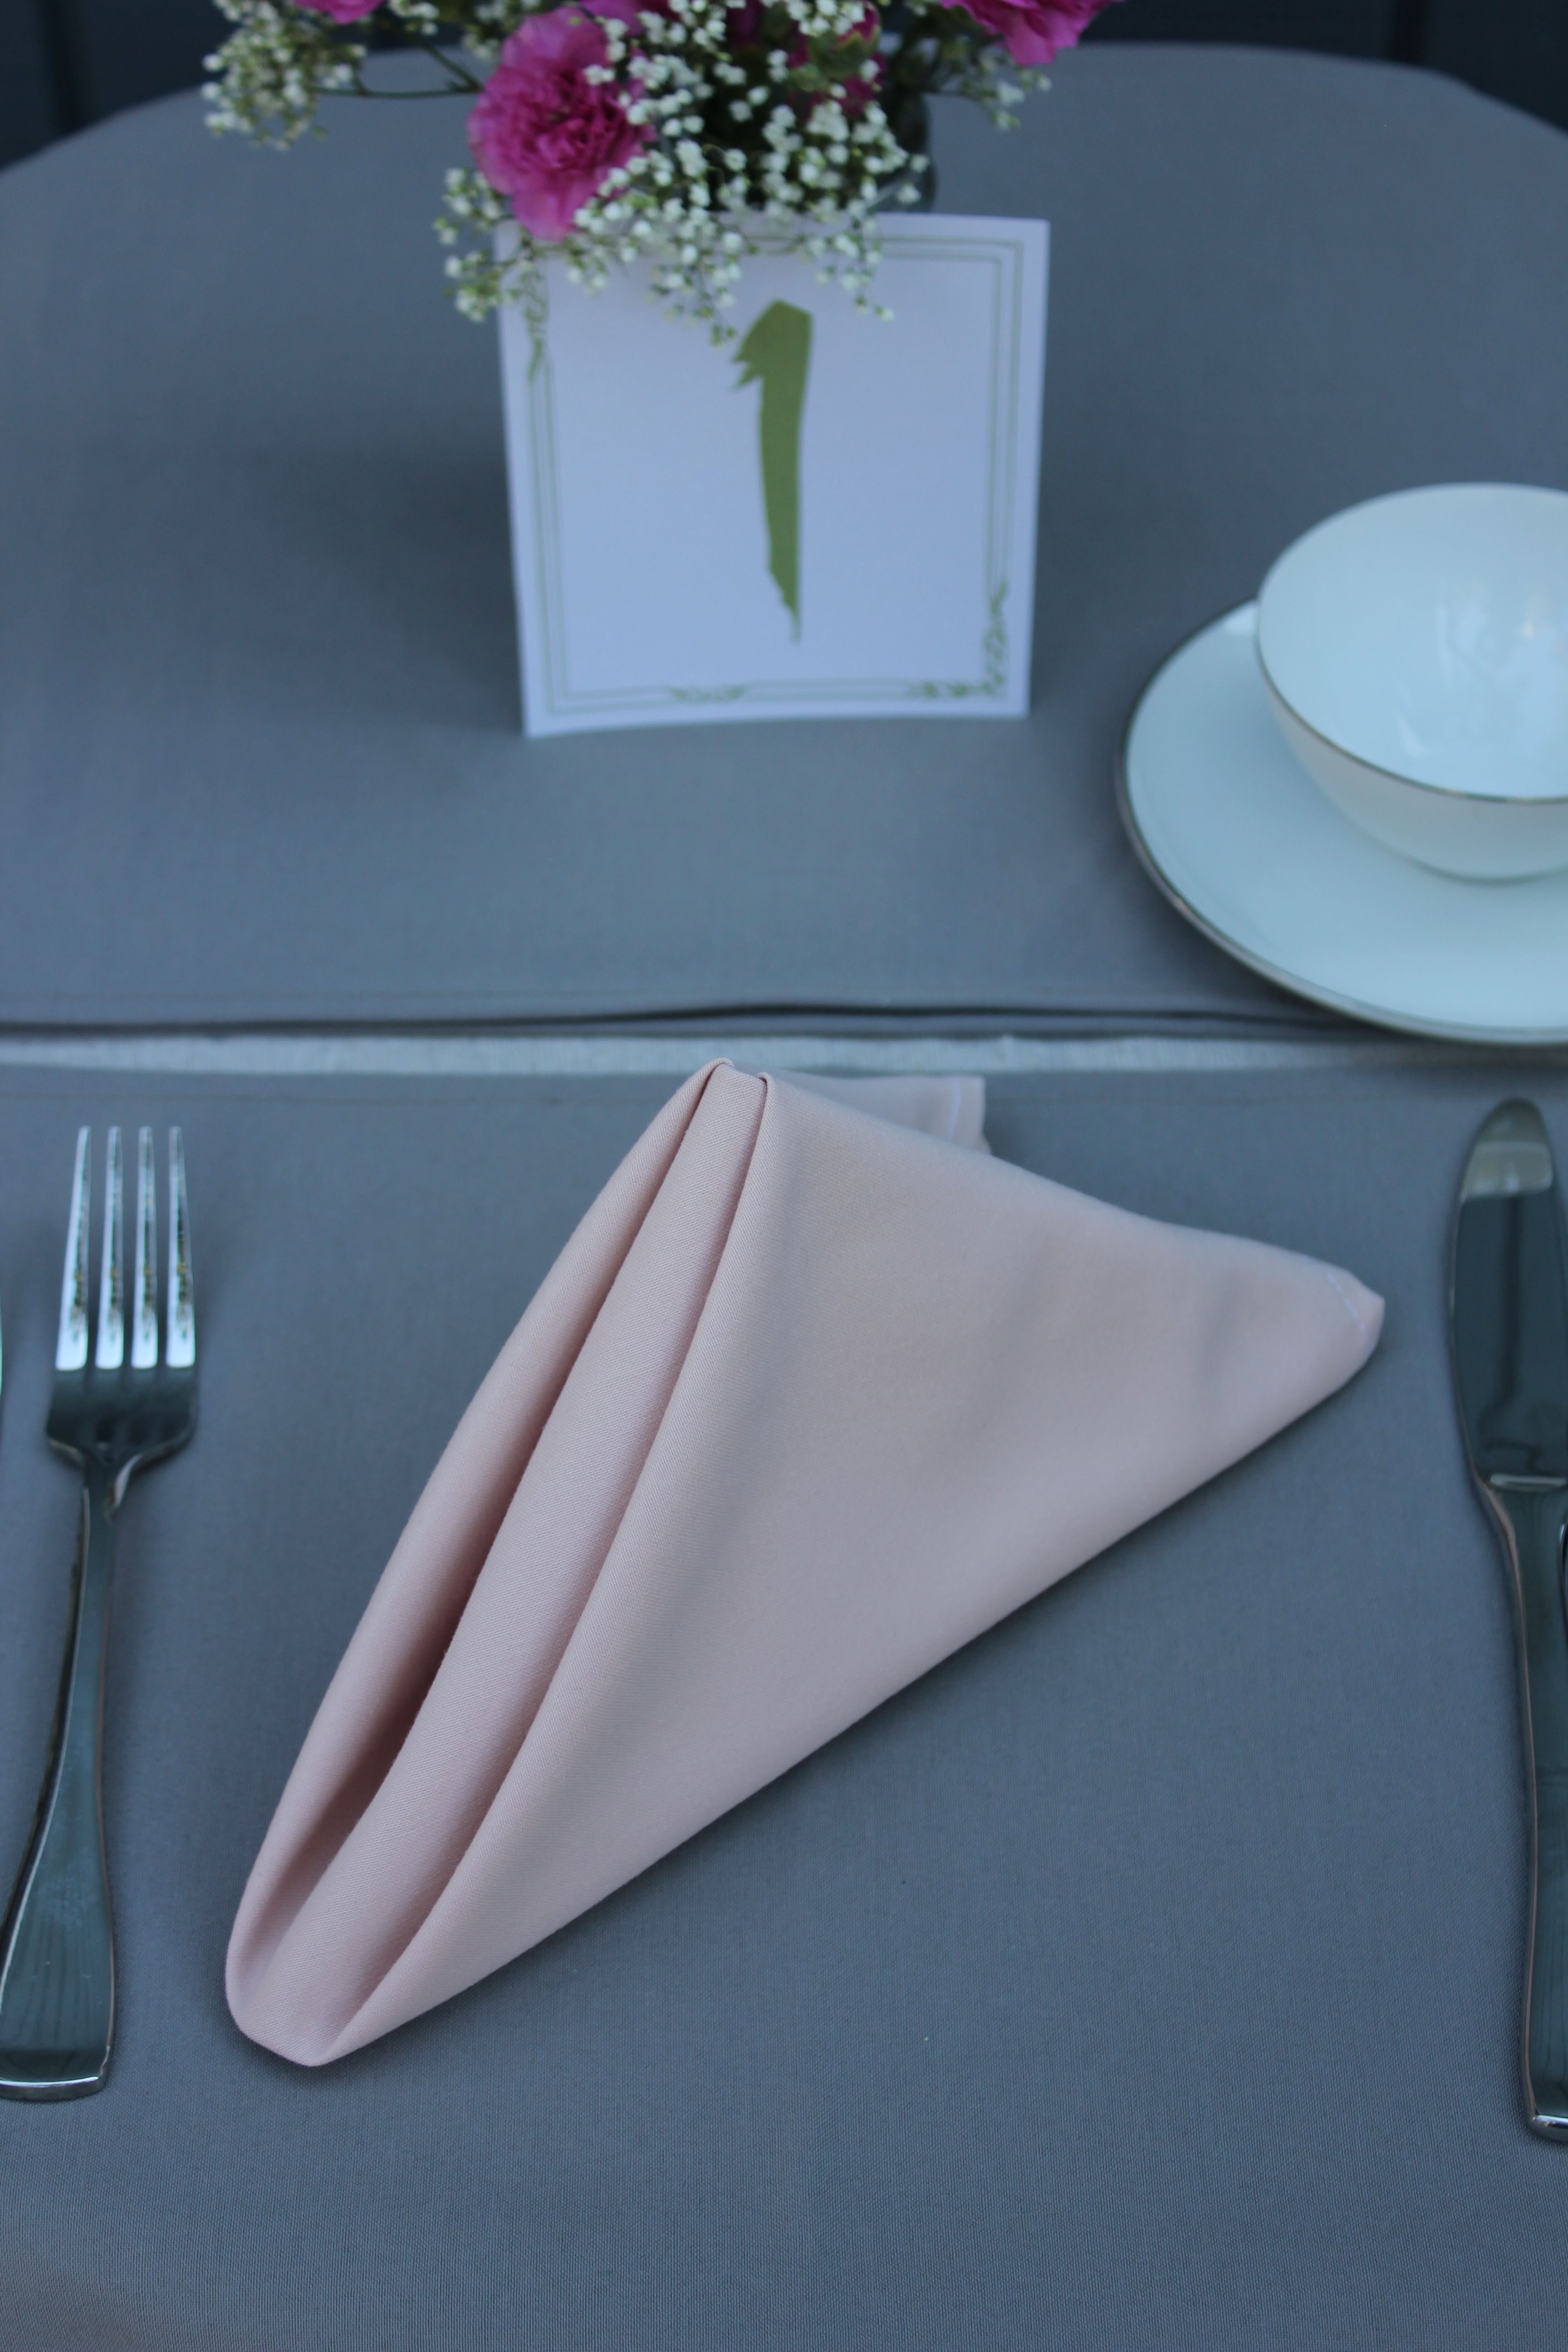 20 Inch Blush Napkins 12 Pack Organic Bedding Table Runner And Placemats Clean Bedroom